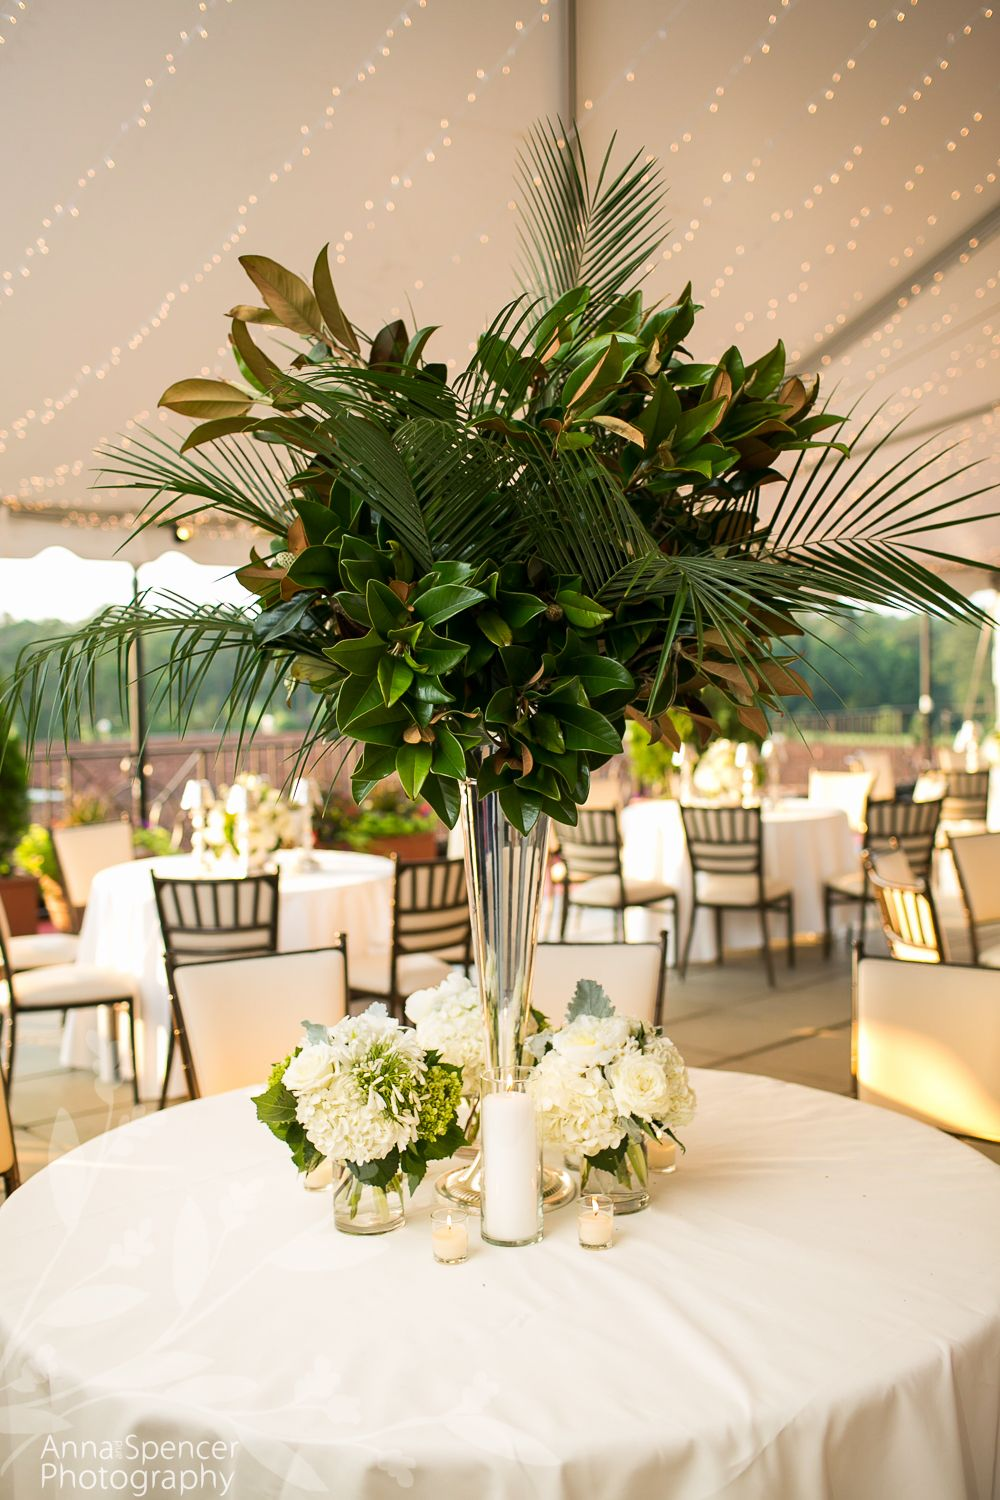 Tall Greenery Based Centerpiece With Magnolia Leaves And Low White F